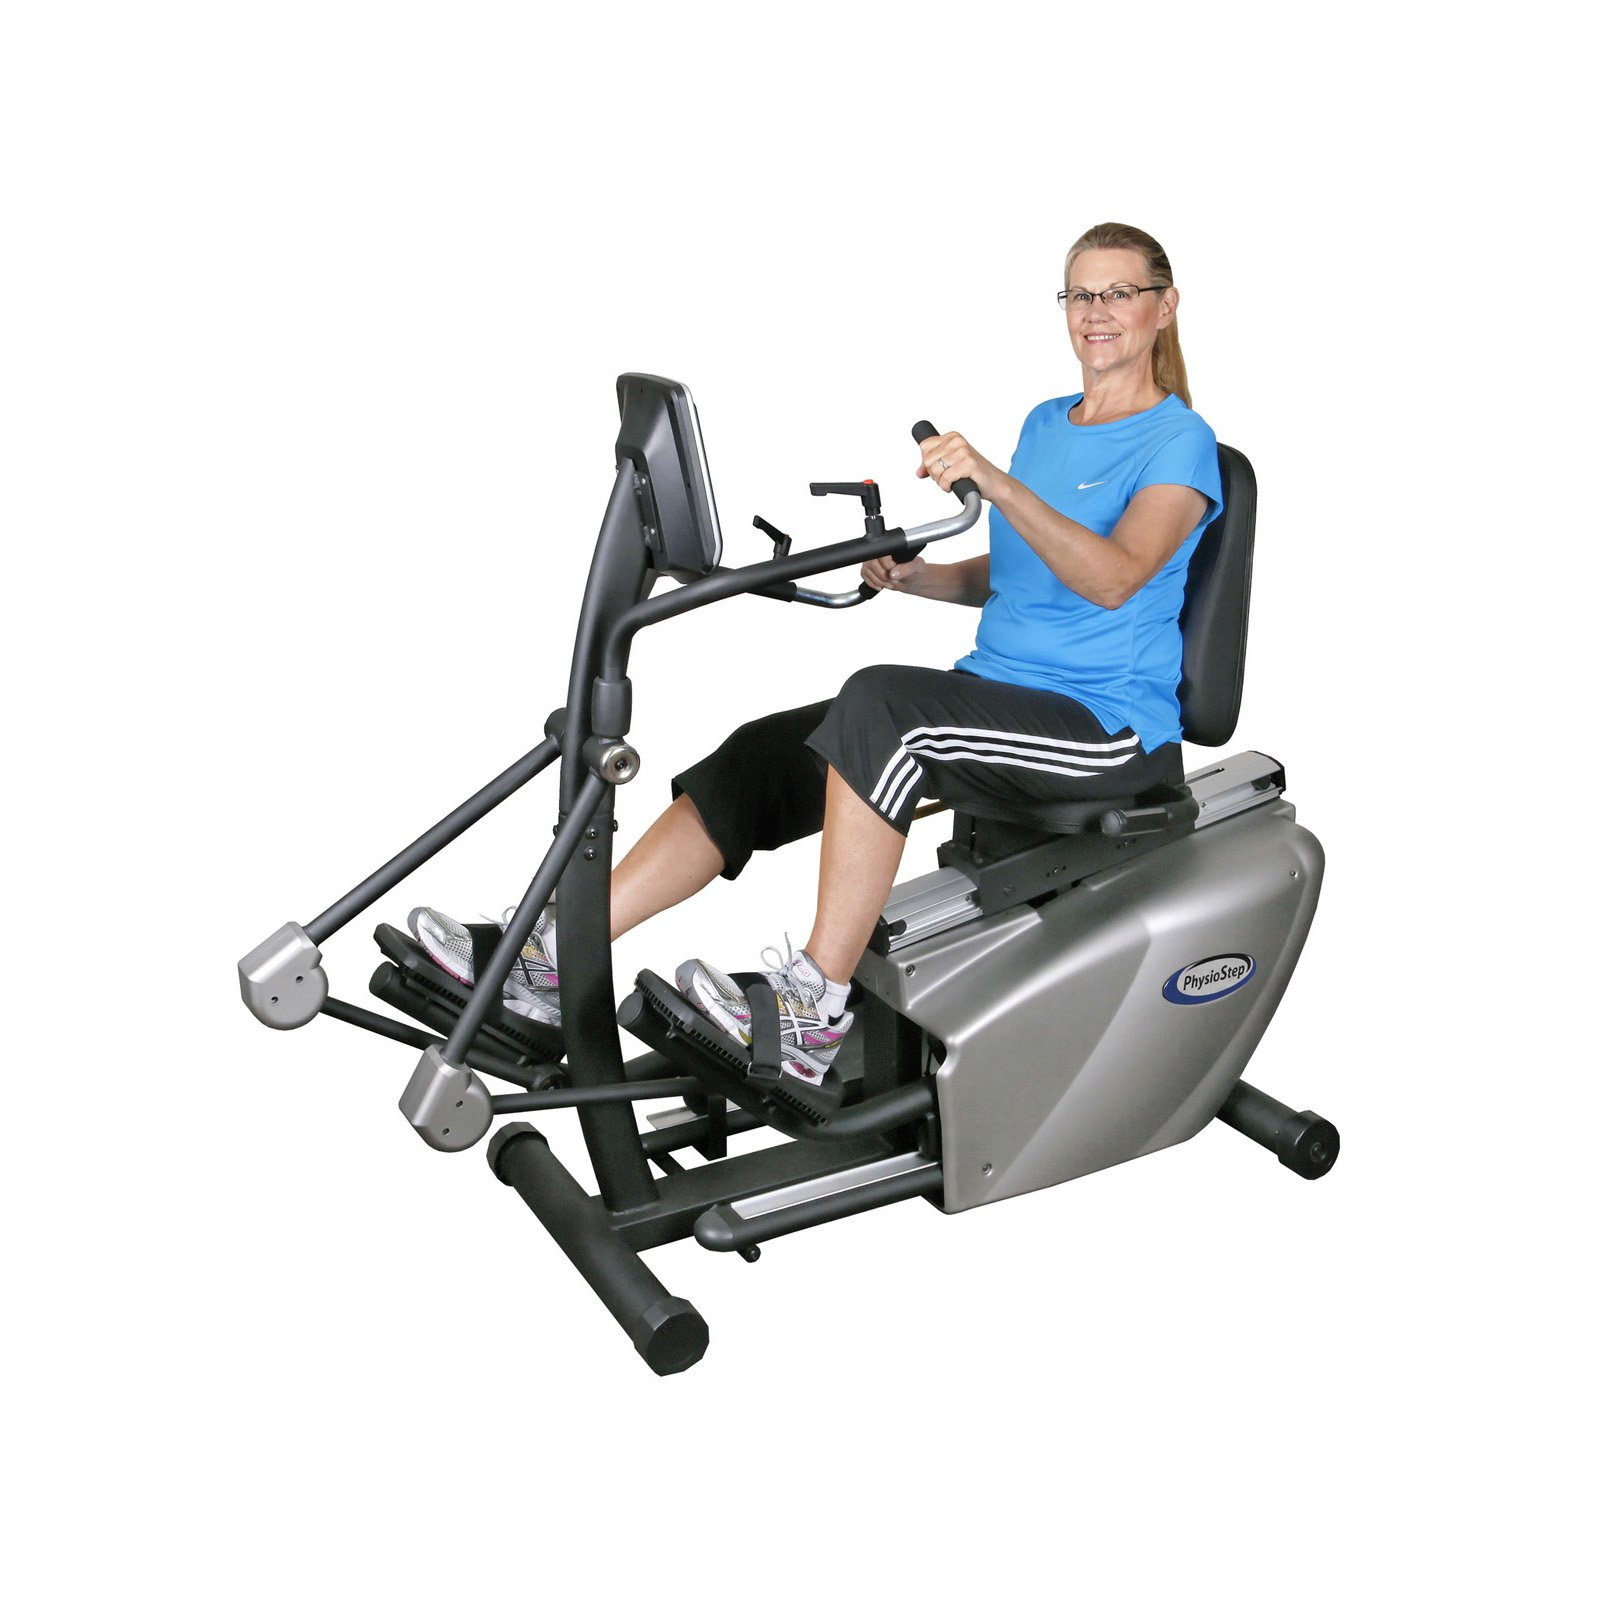 HCI Fitness PhysioStep LTD - Seated Elliptical